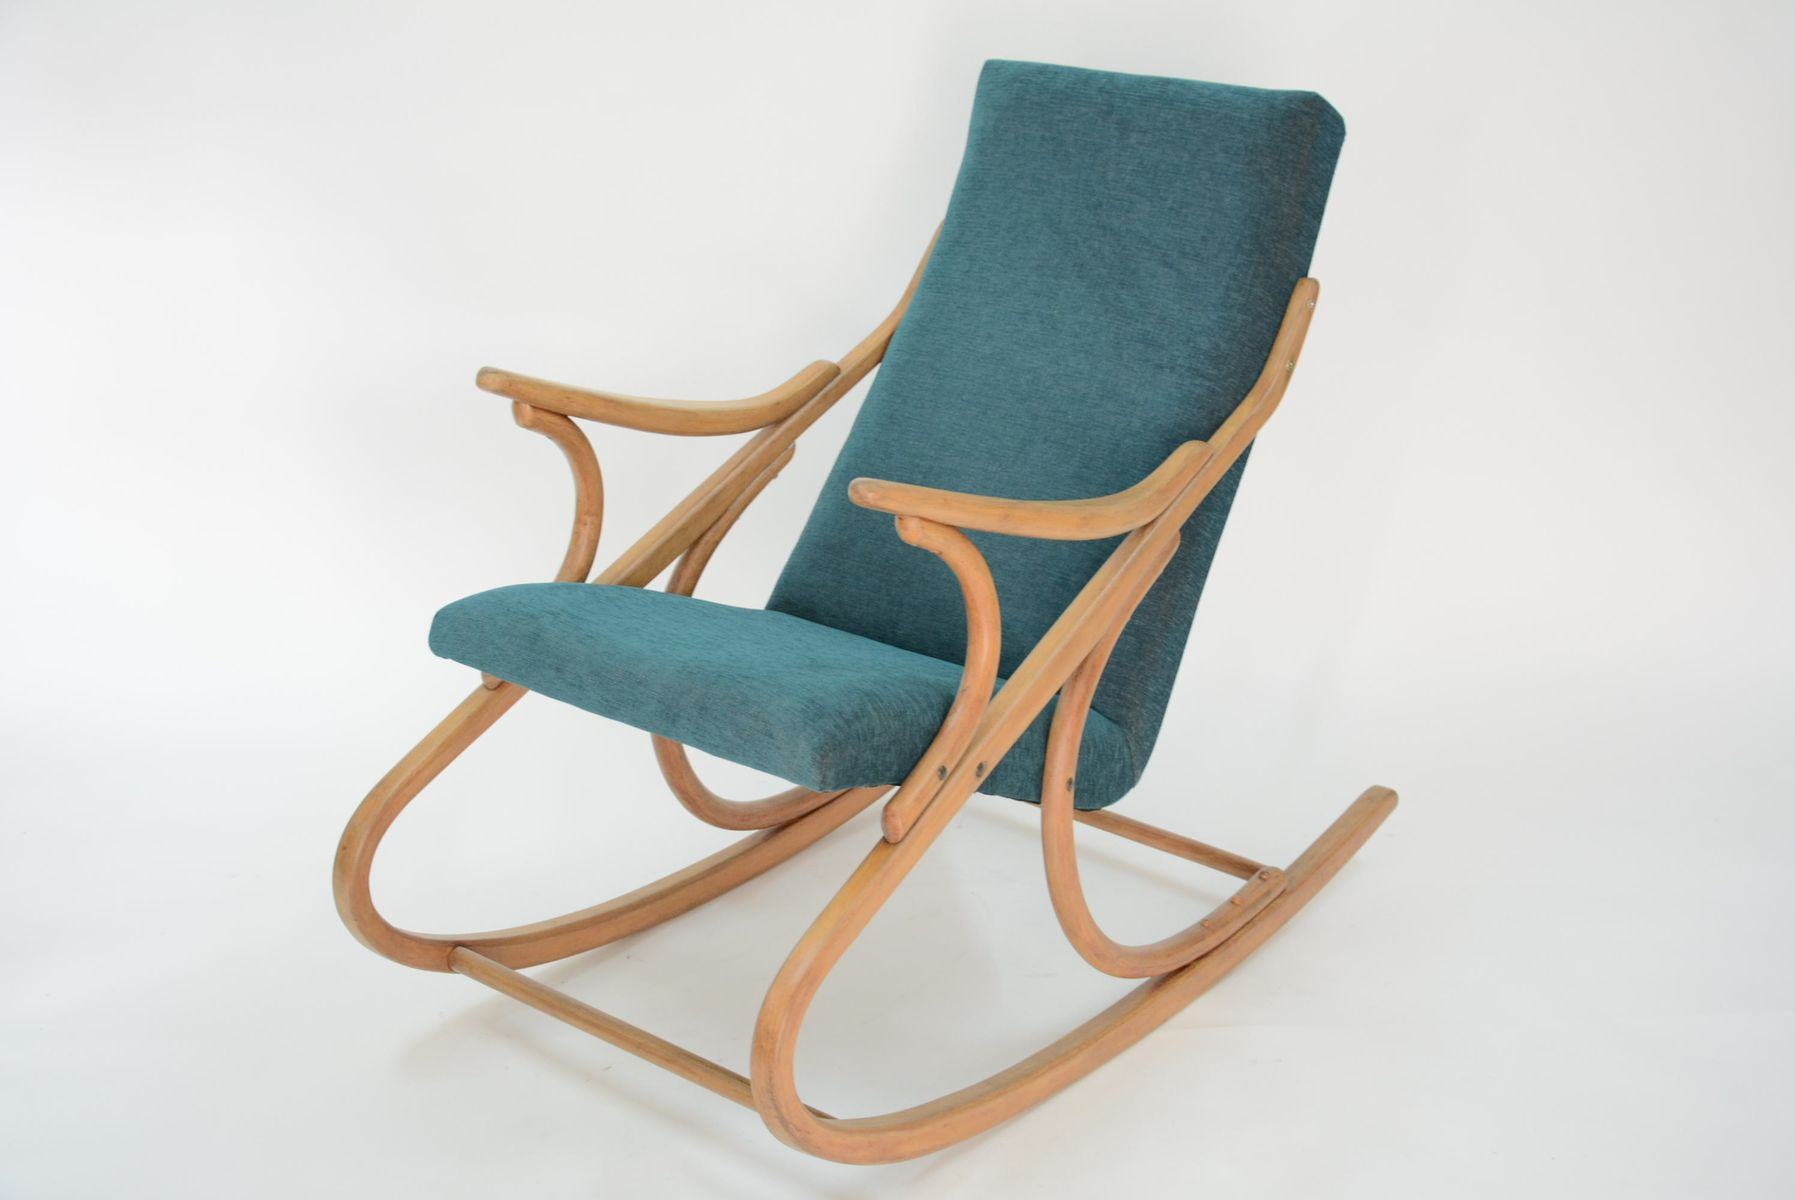 green rocking chair folding lawn chairs ontario by ton 1970s for sale at pamono